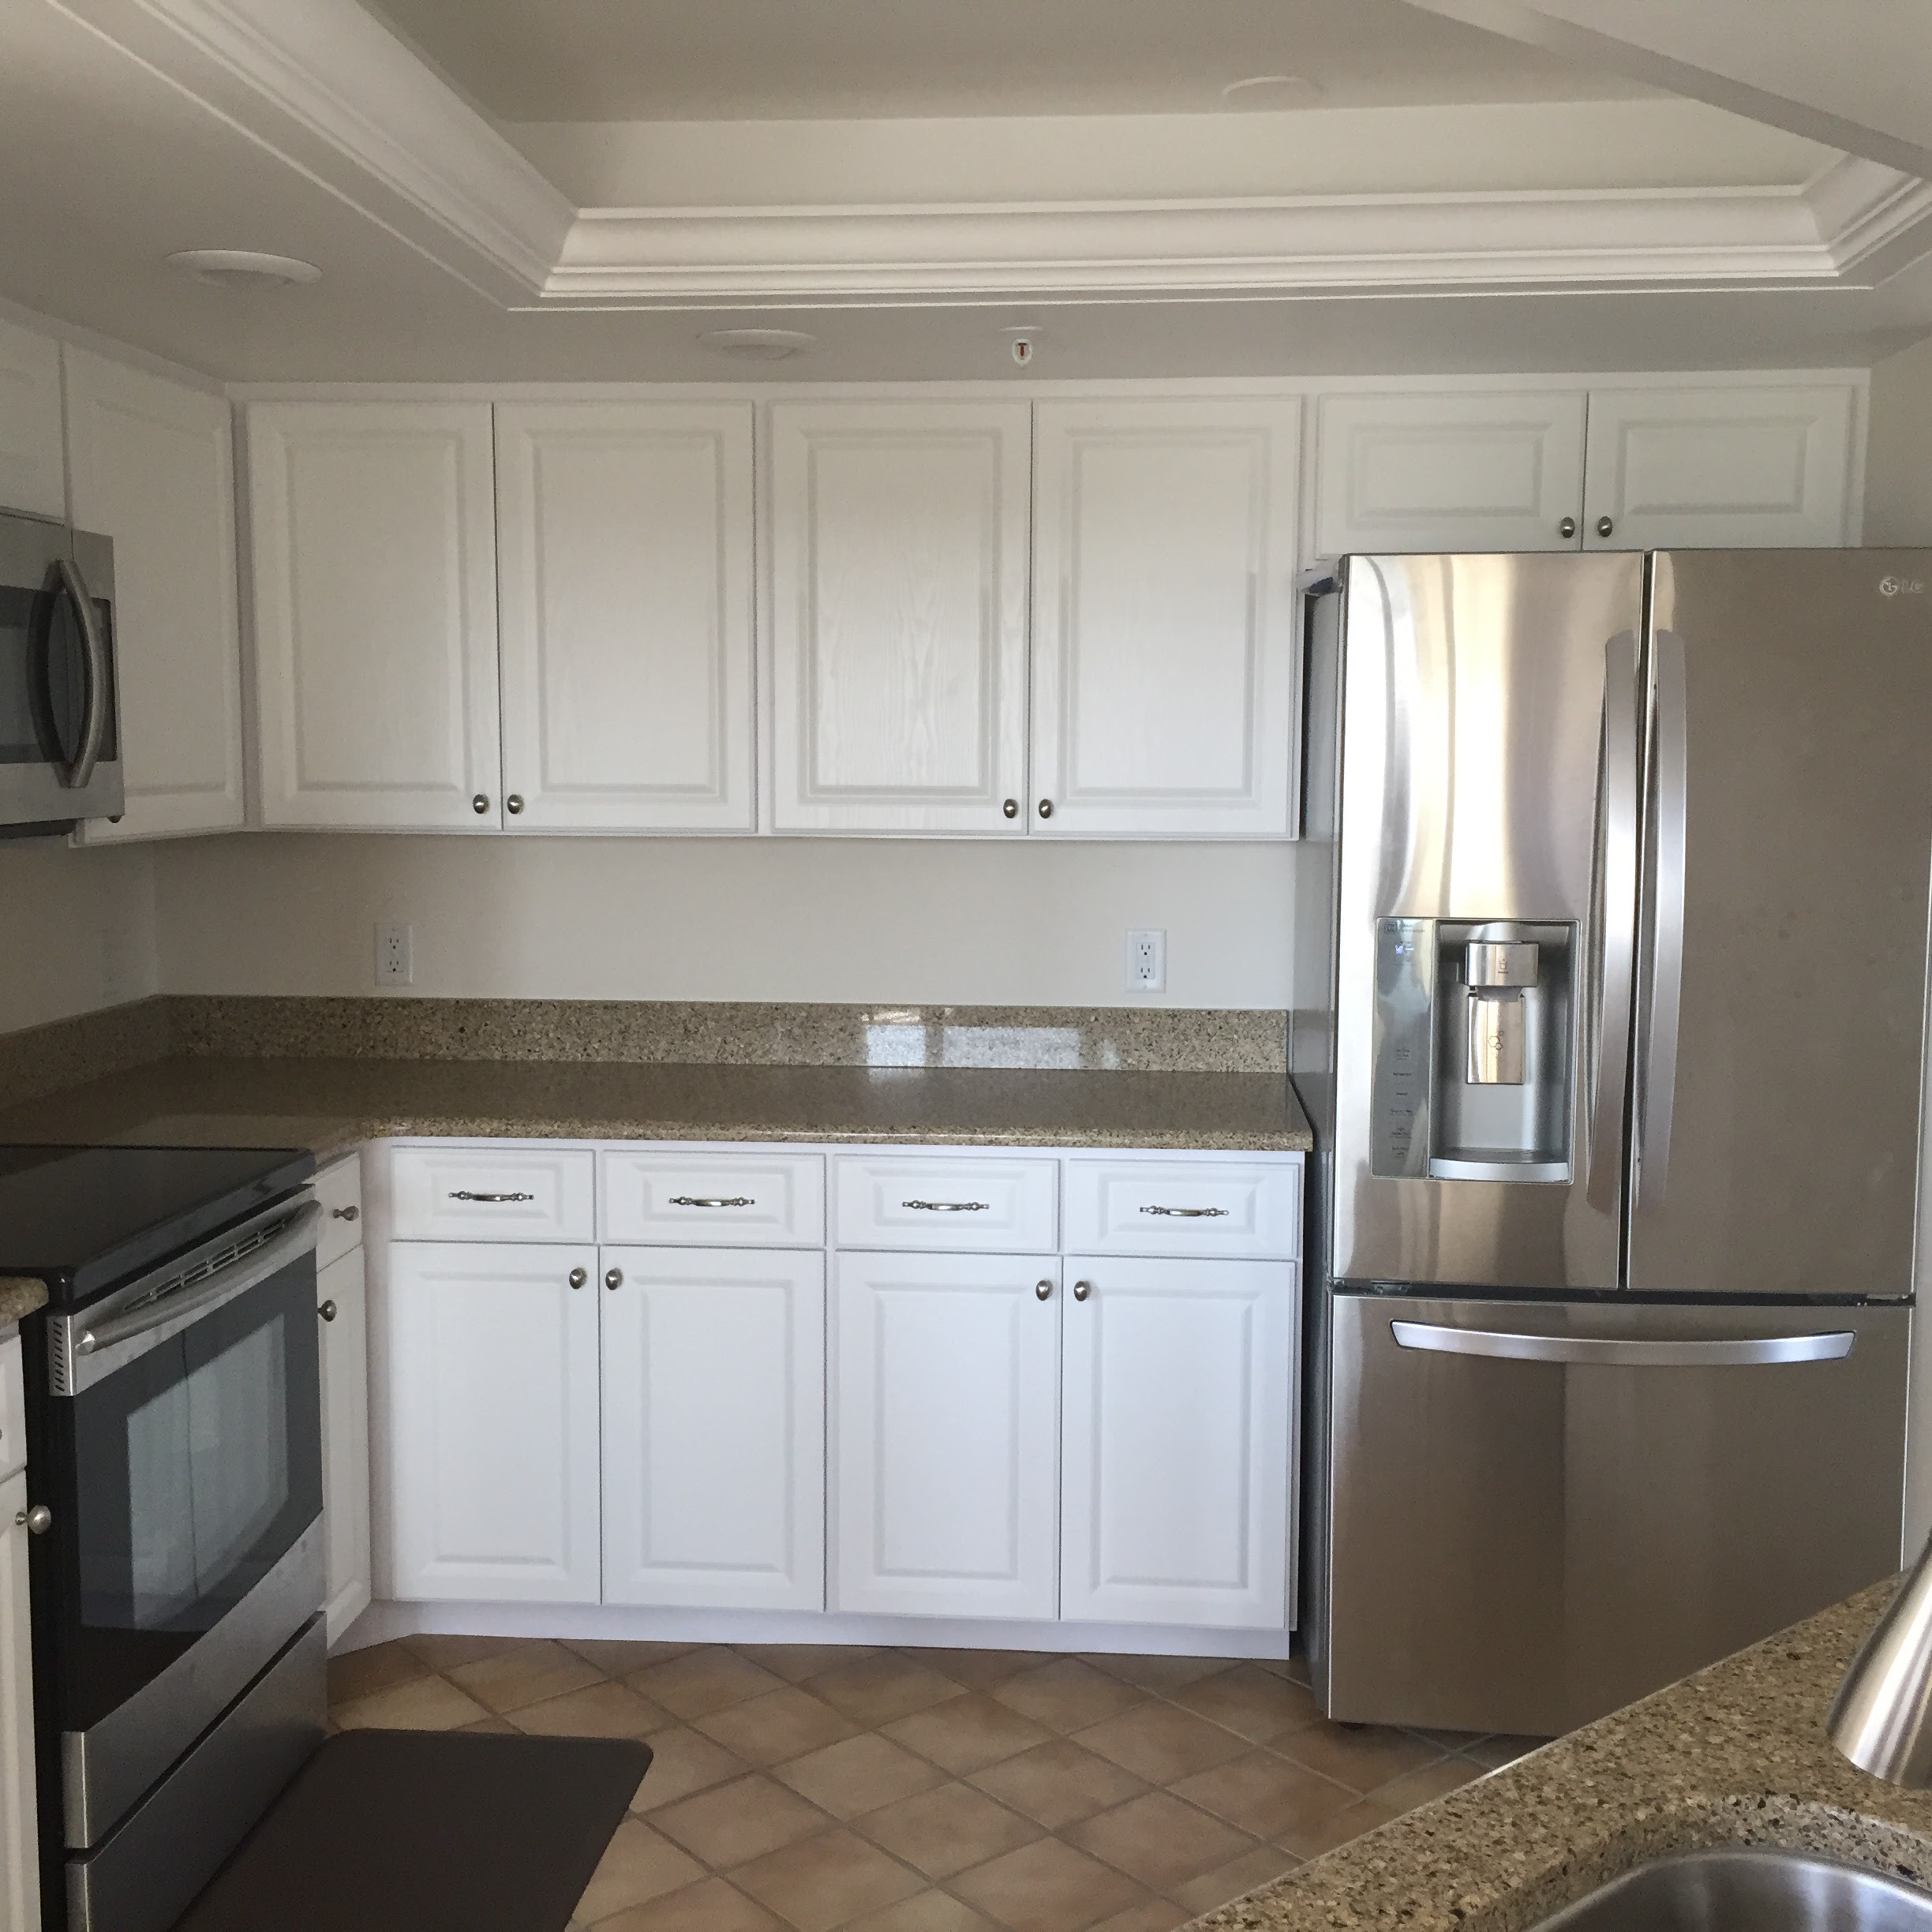 Molding For Kitchen Cabinets Tops: Different Types Of Molding